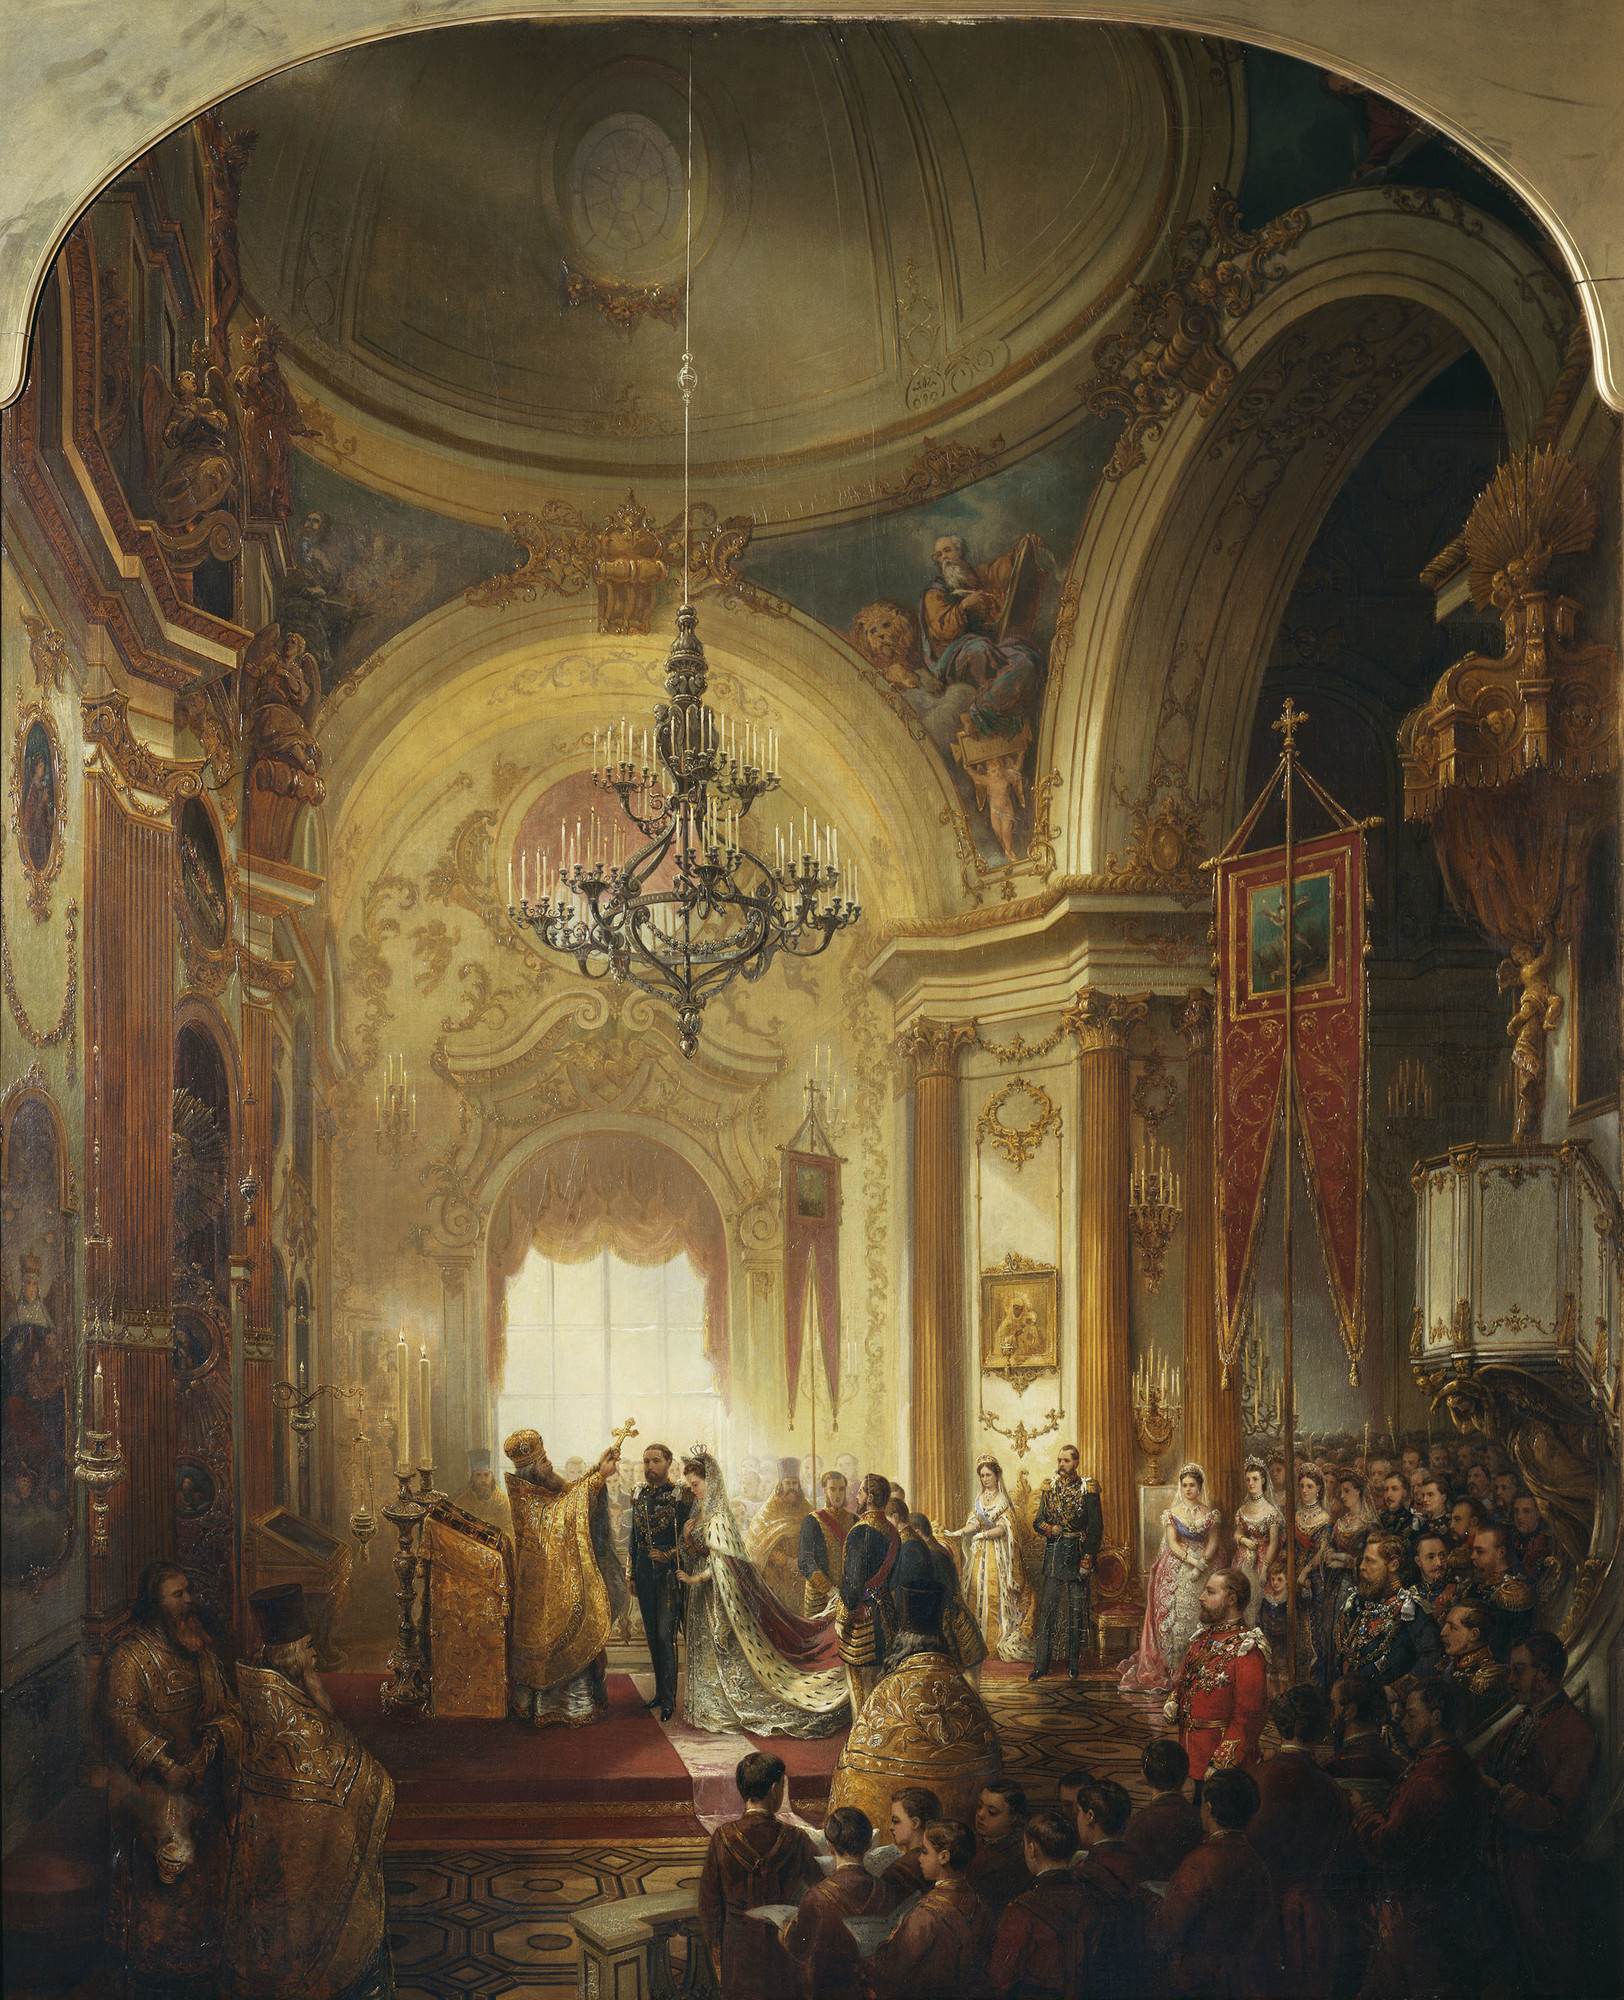 Nicholas Chevalier, The Marriage of Prince Alfred, Duke of Edinburgh, ca. 1874-75, Royal Collection Trust, London, UK. queen victoria weddings